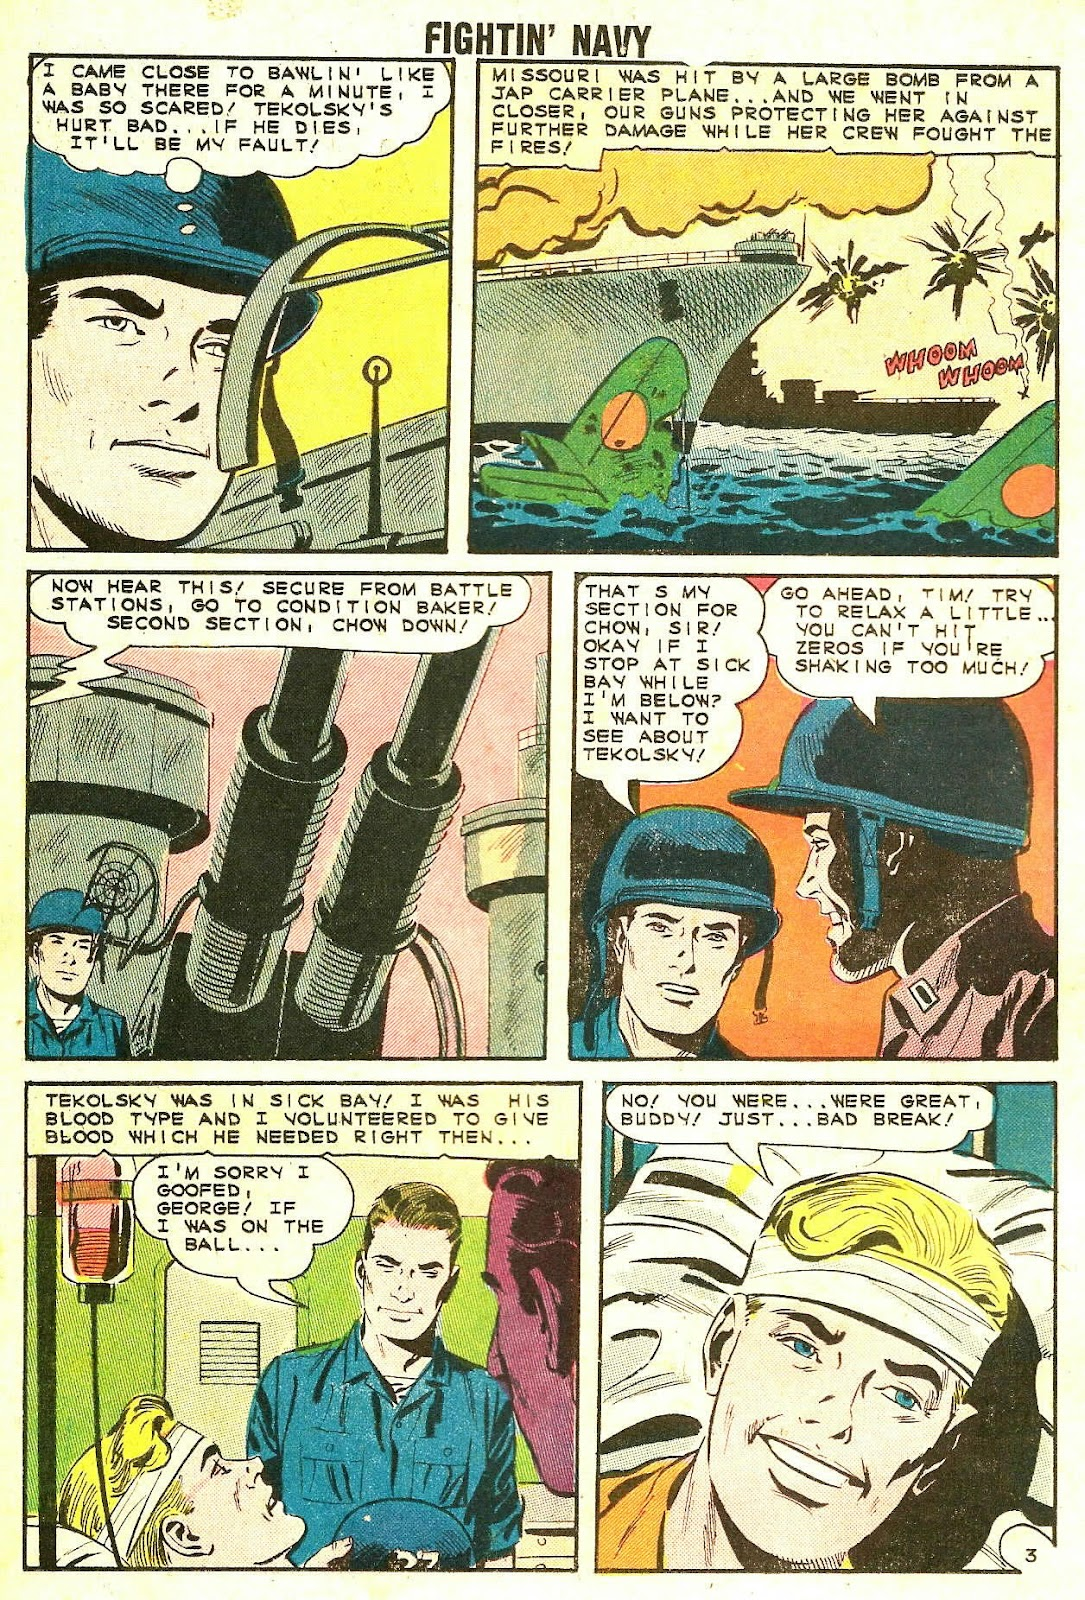 Read online Fightin' Navy comic -  Issue #118 - 18